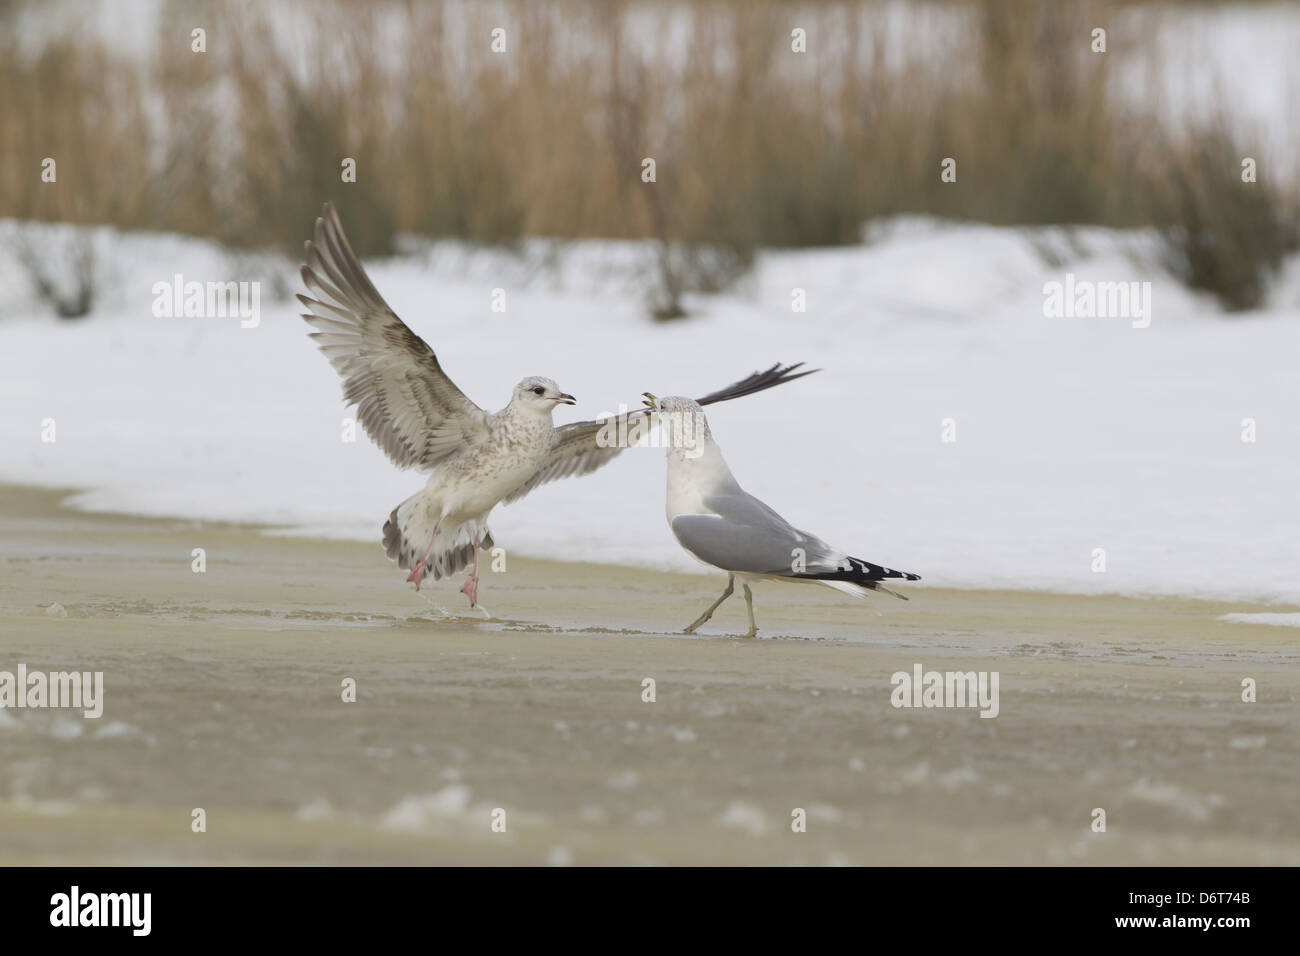 Common Gull Larus canus immature first winter plumage in flight taking off from advancing adult on ice frozen pond - Stock Image